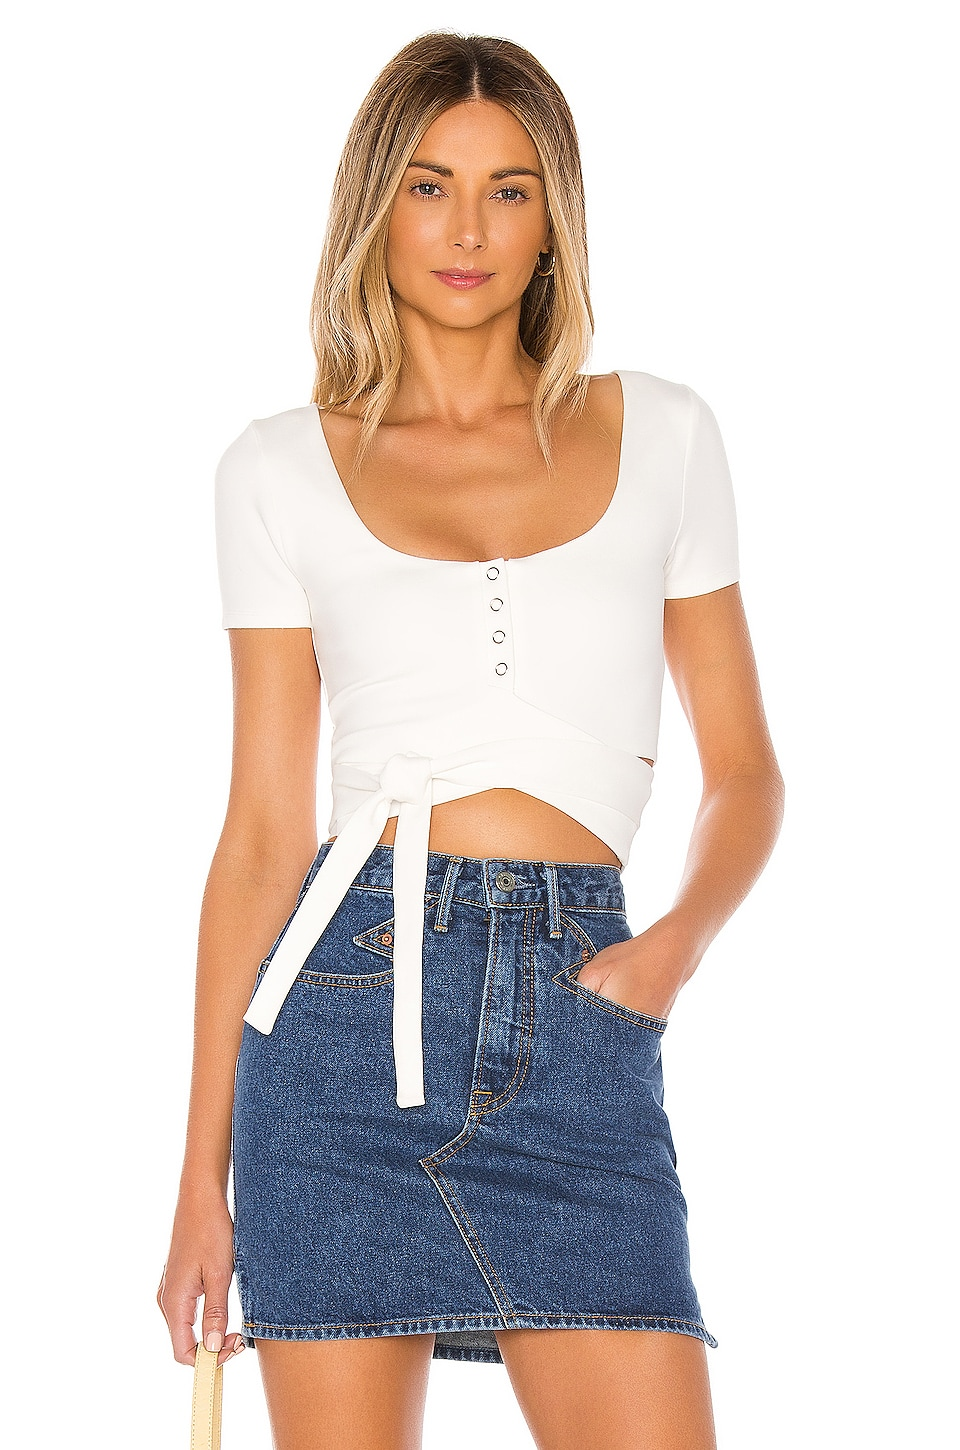 Lovers + Friends Zuri Top in White